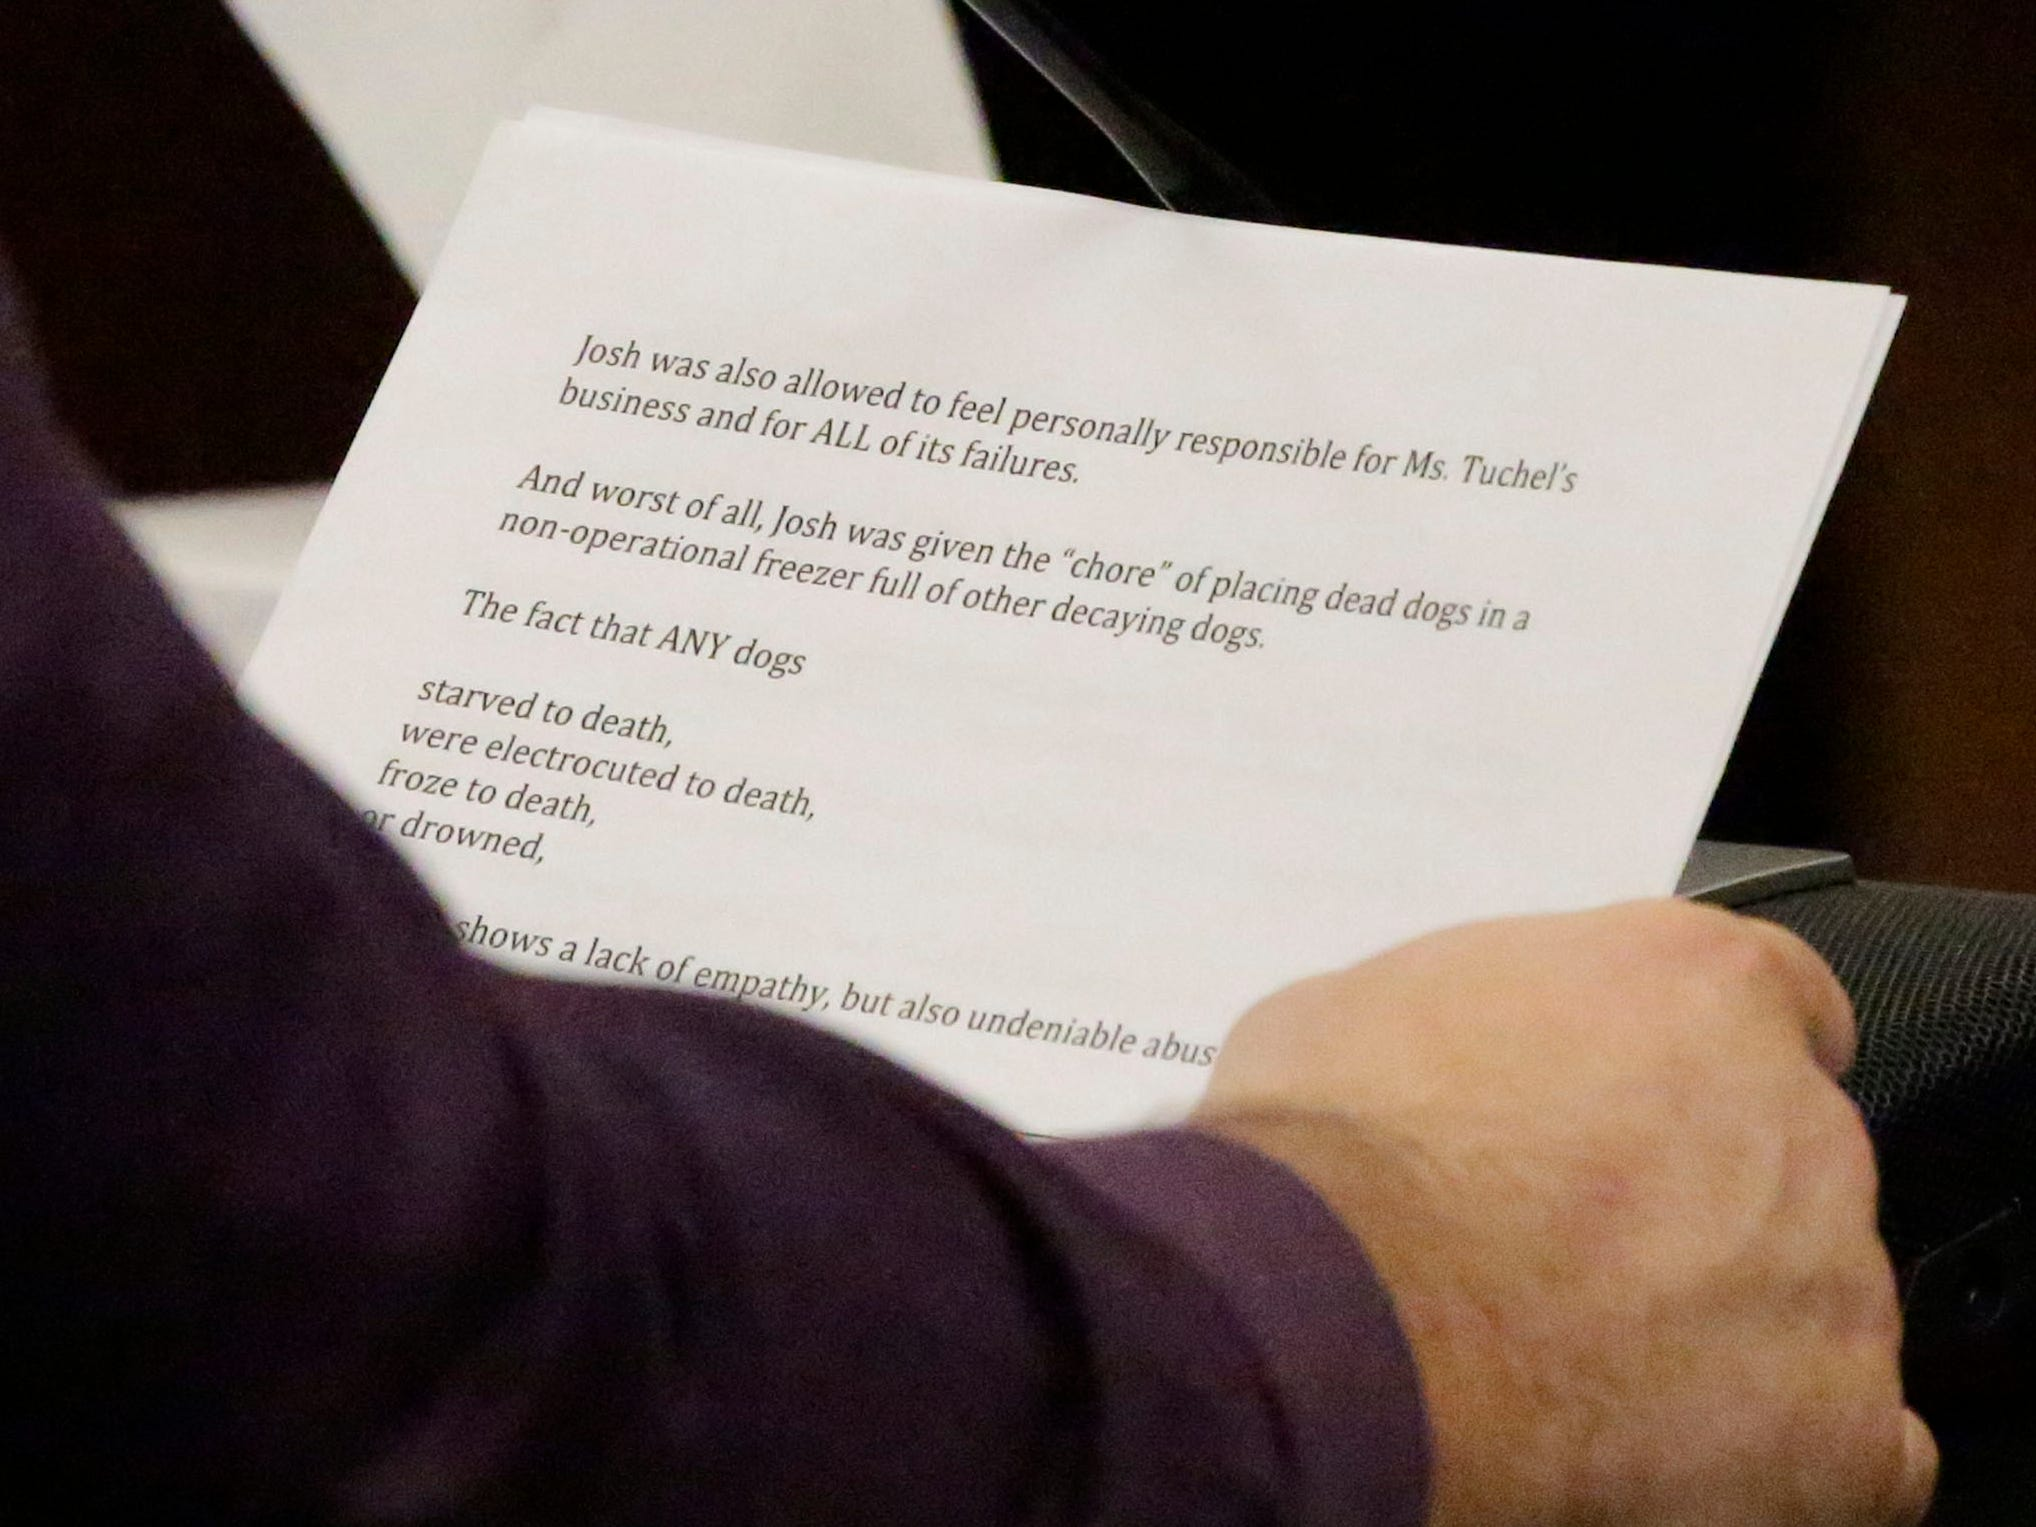 A tight shot of a page of the impact statement that Charles Mikula read into the court record in Sheboygan County Circuit Court Branch 1, Friday, October 5, 2018, in Sheboygan, Wis. Mikula's ex-wife Christy Rose Tuchel, is being sentenced in her involvement in the deaths of dogs at the former Kinship Companions kennel.